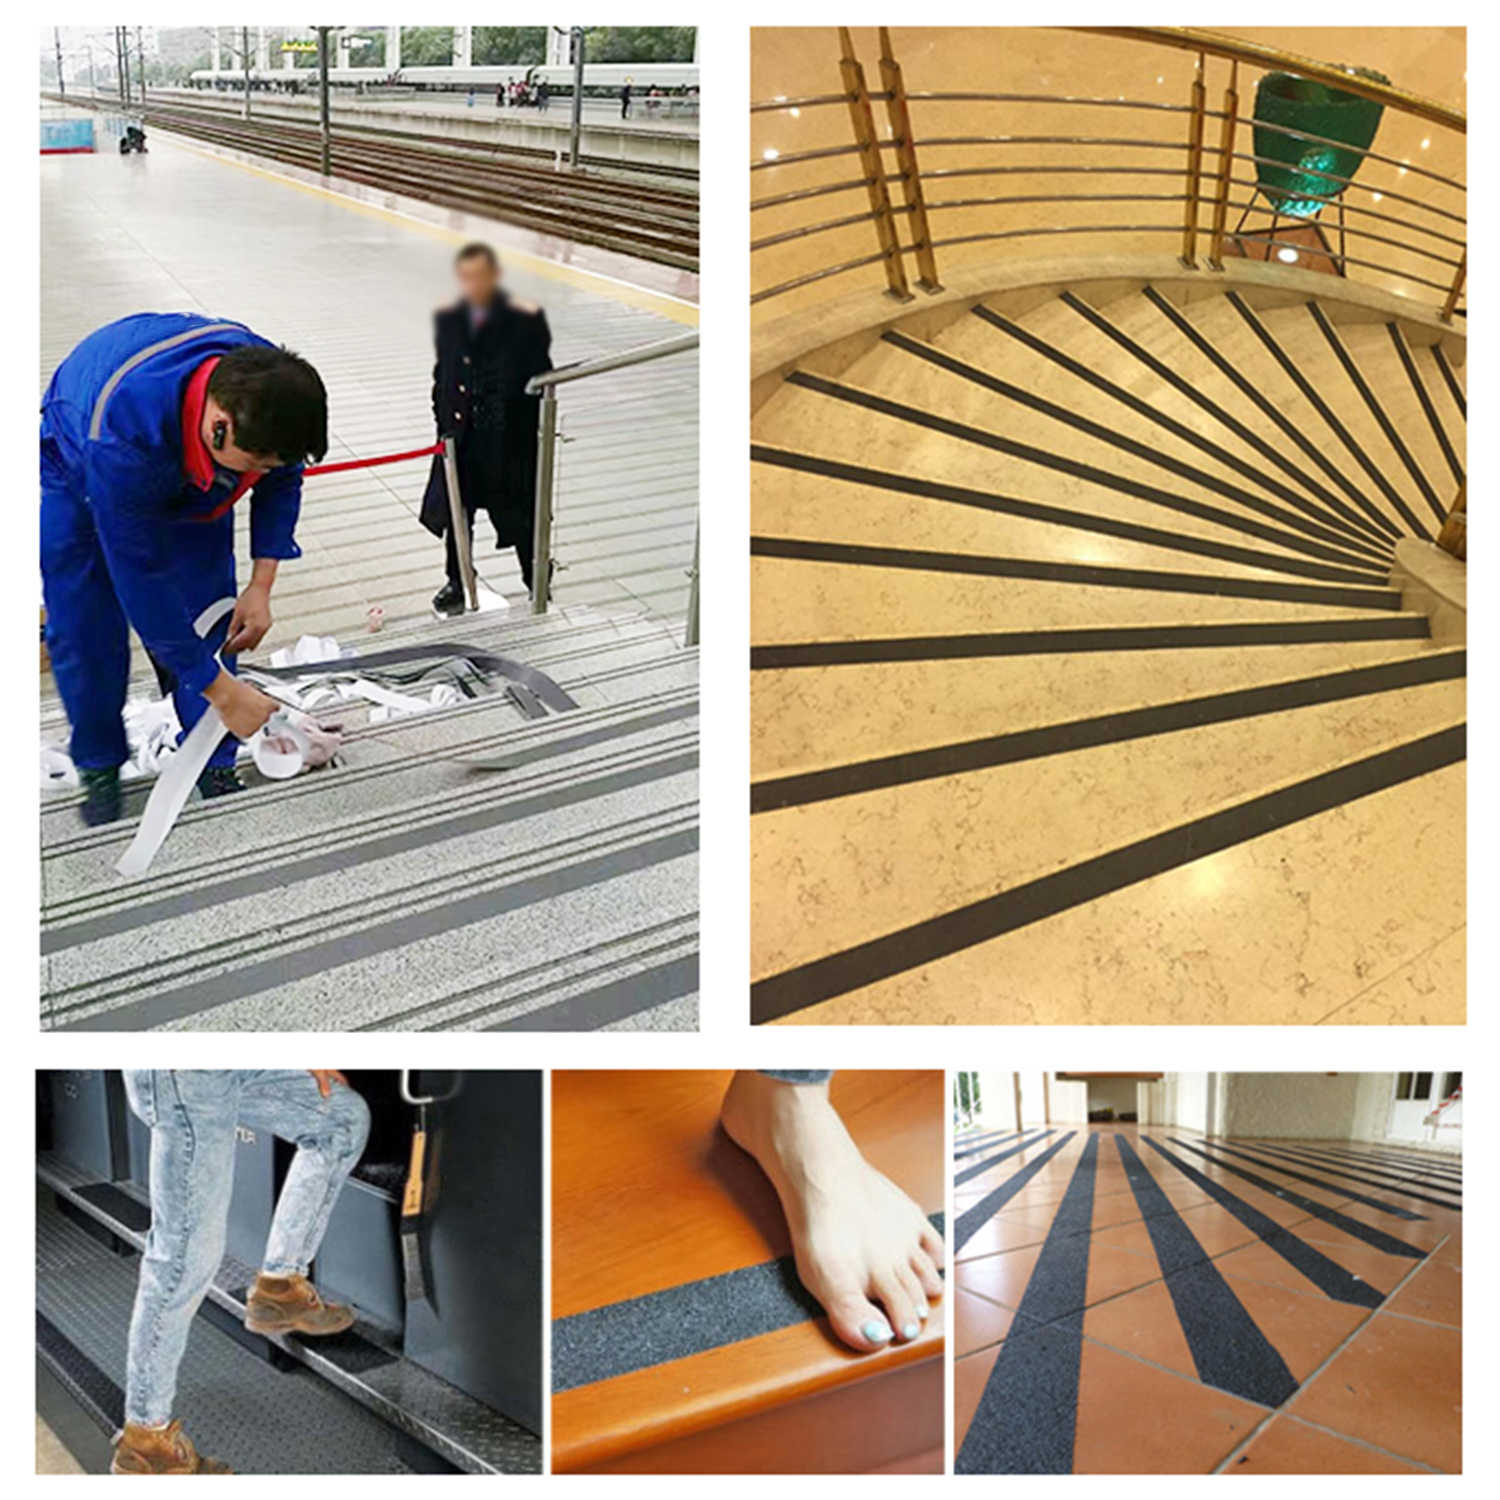 Anti Slip Grip Tape Non Slip Traction Tapes Adhesive Grip For Indoor Ladder Outdoor Walkways Tread Step Grip Tape Silicone Tape Tape Aliexpress